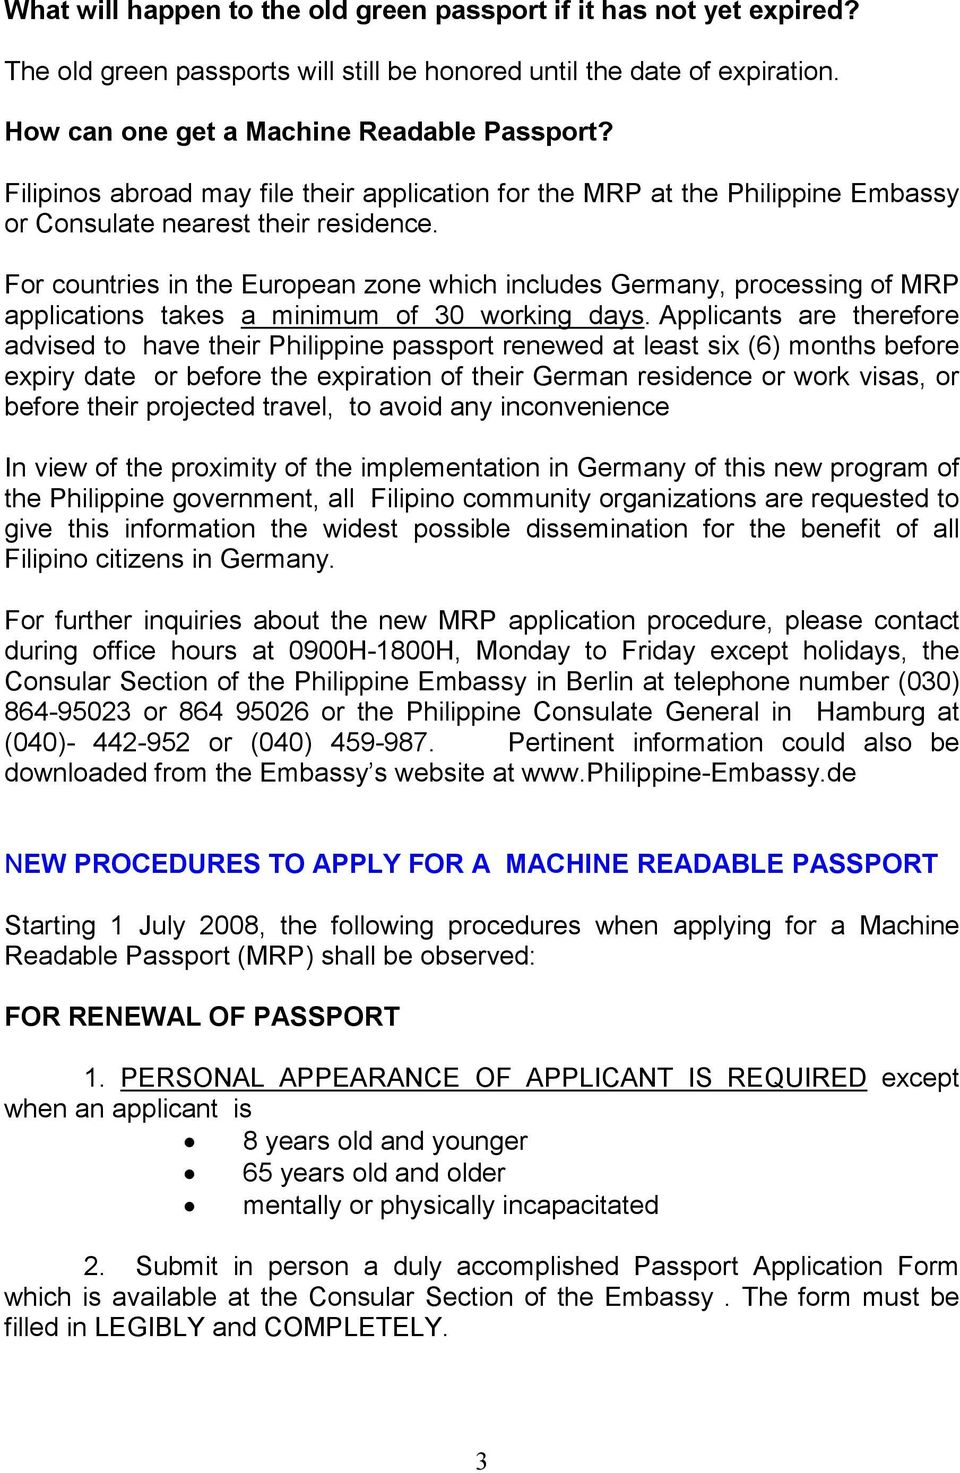 NEW PASSPORT PHOTO REQUIREMENTS FOR THE MACHINE READABLE